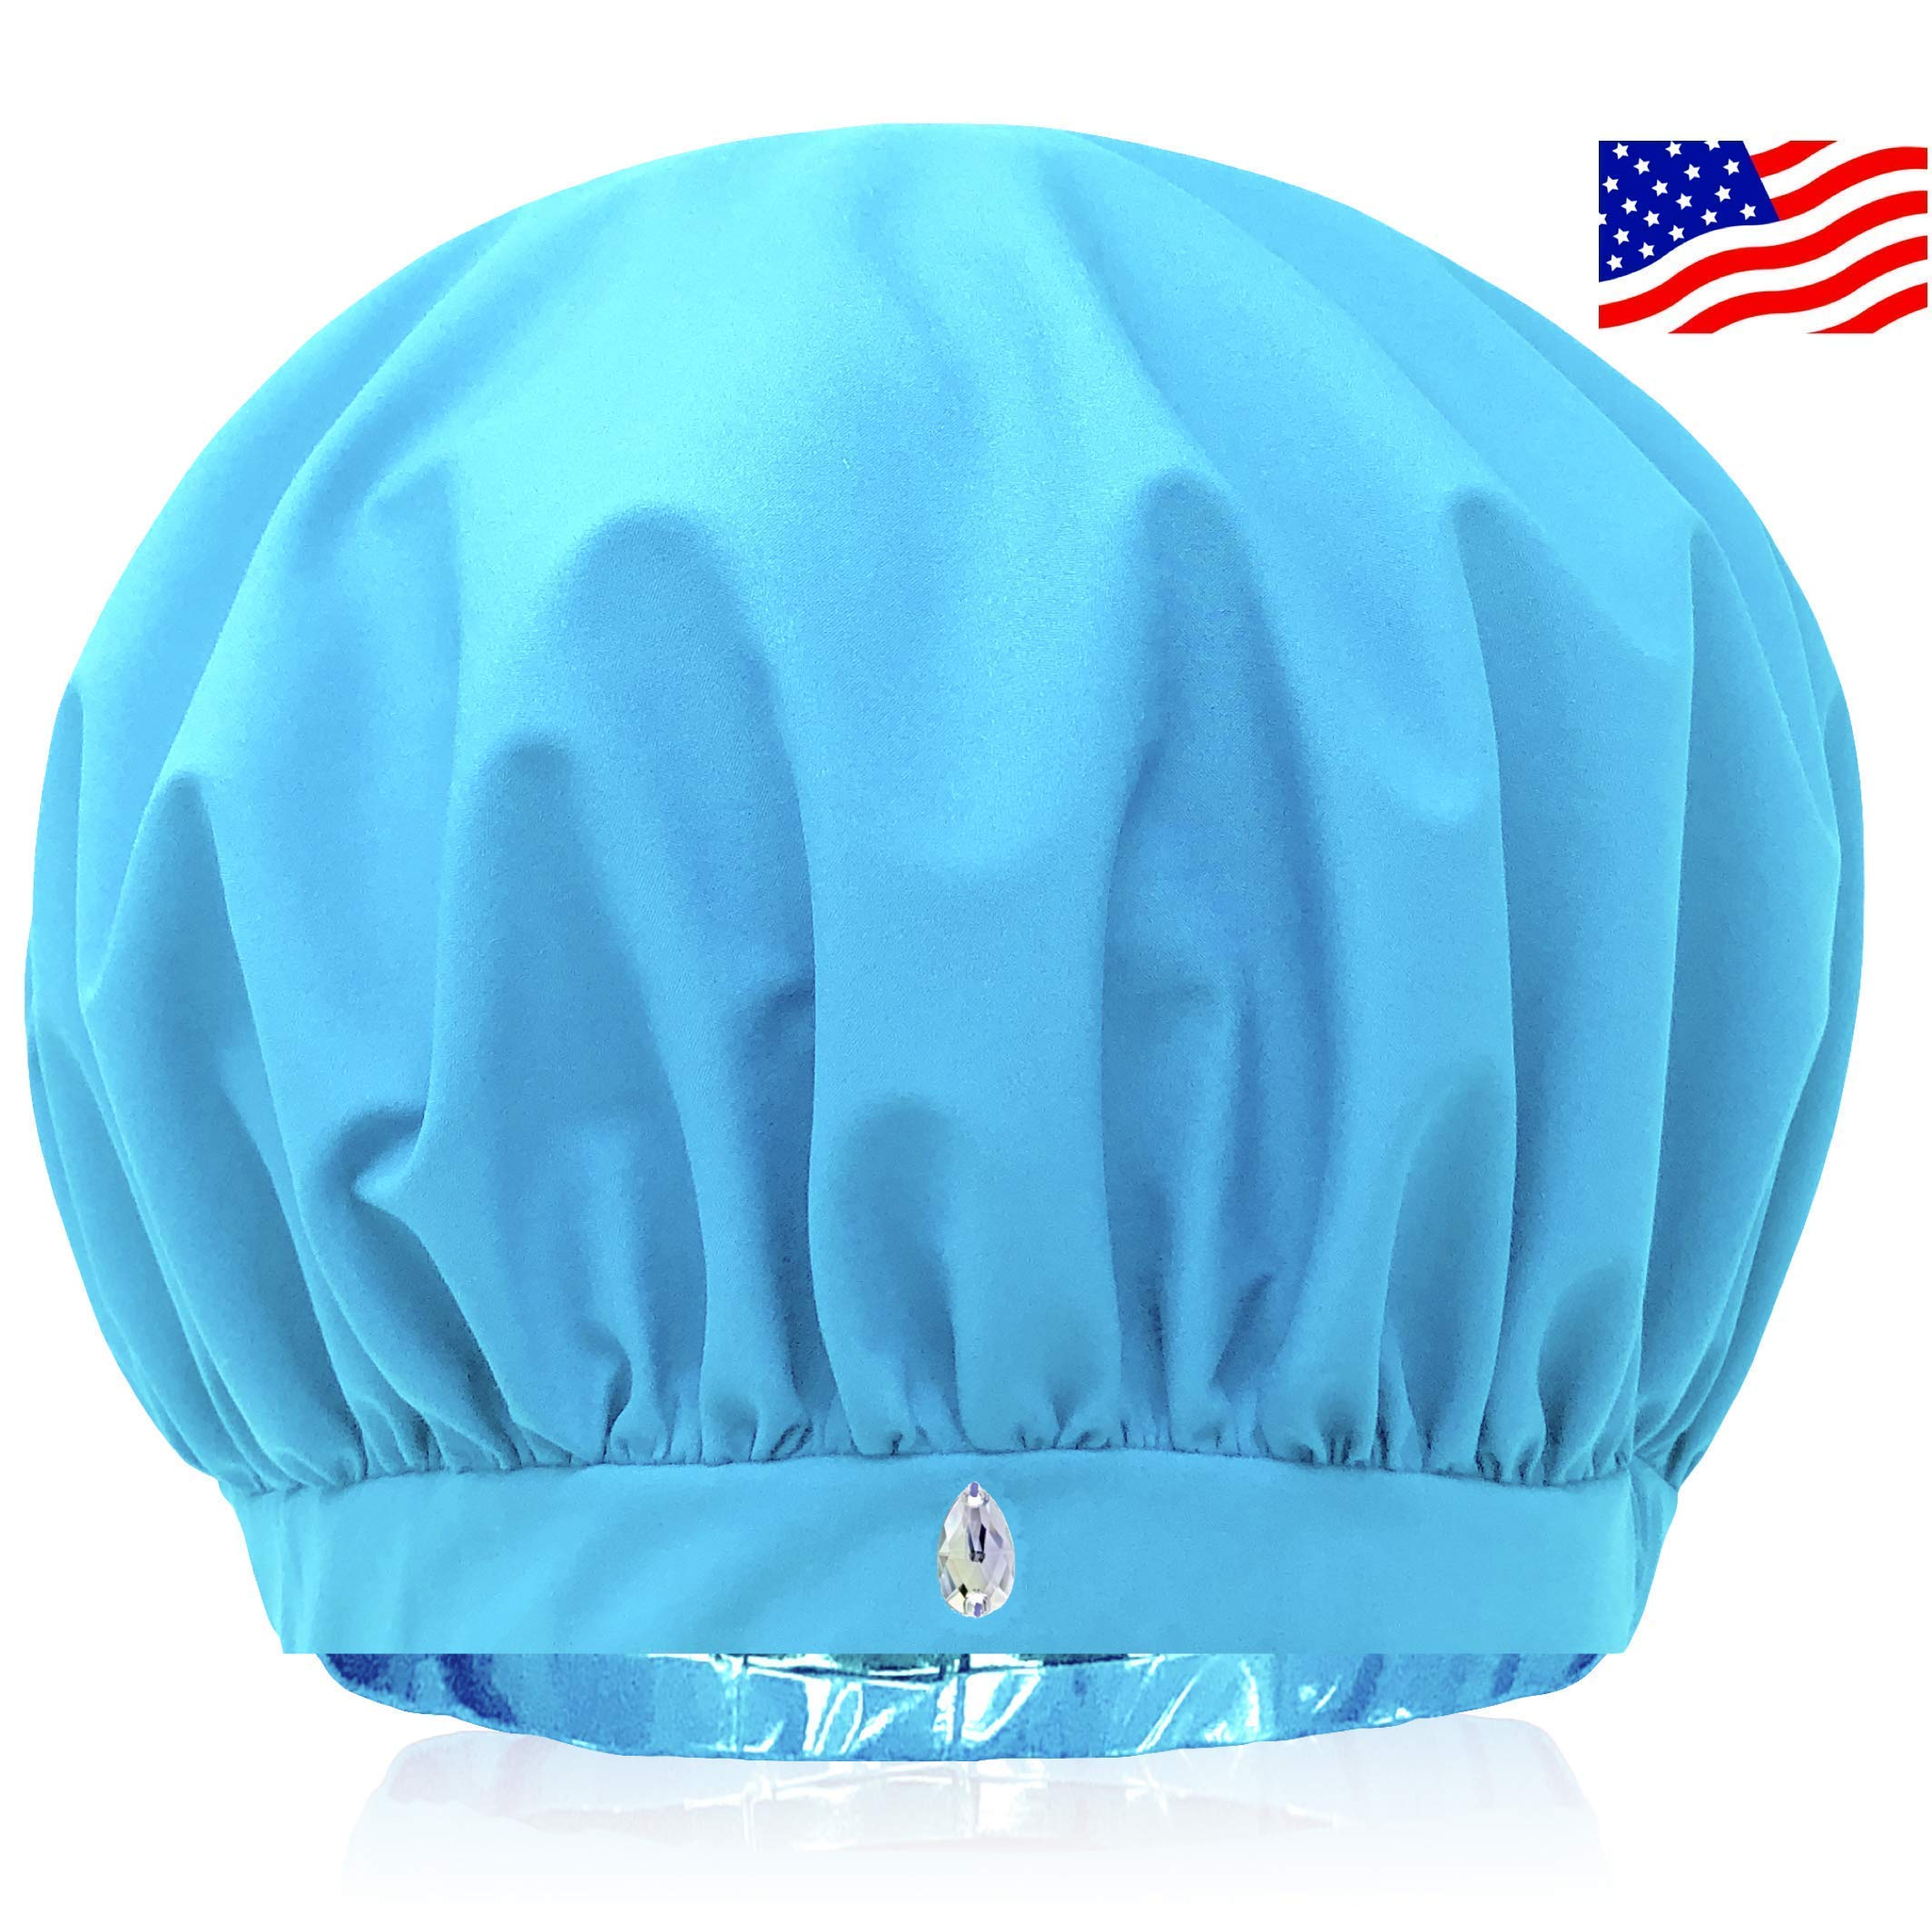 SUPERPOWER CAP The Only Shower Cap That Removes Humidity To Keep Dry Hair Styled | Waterproof Breathable Fabric | Large For Long Hair | Adjustable | No Slip Grip | Swarovski crystal | Gift Box | USA